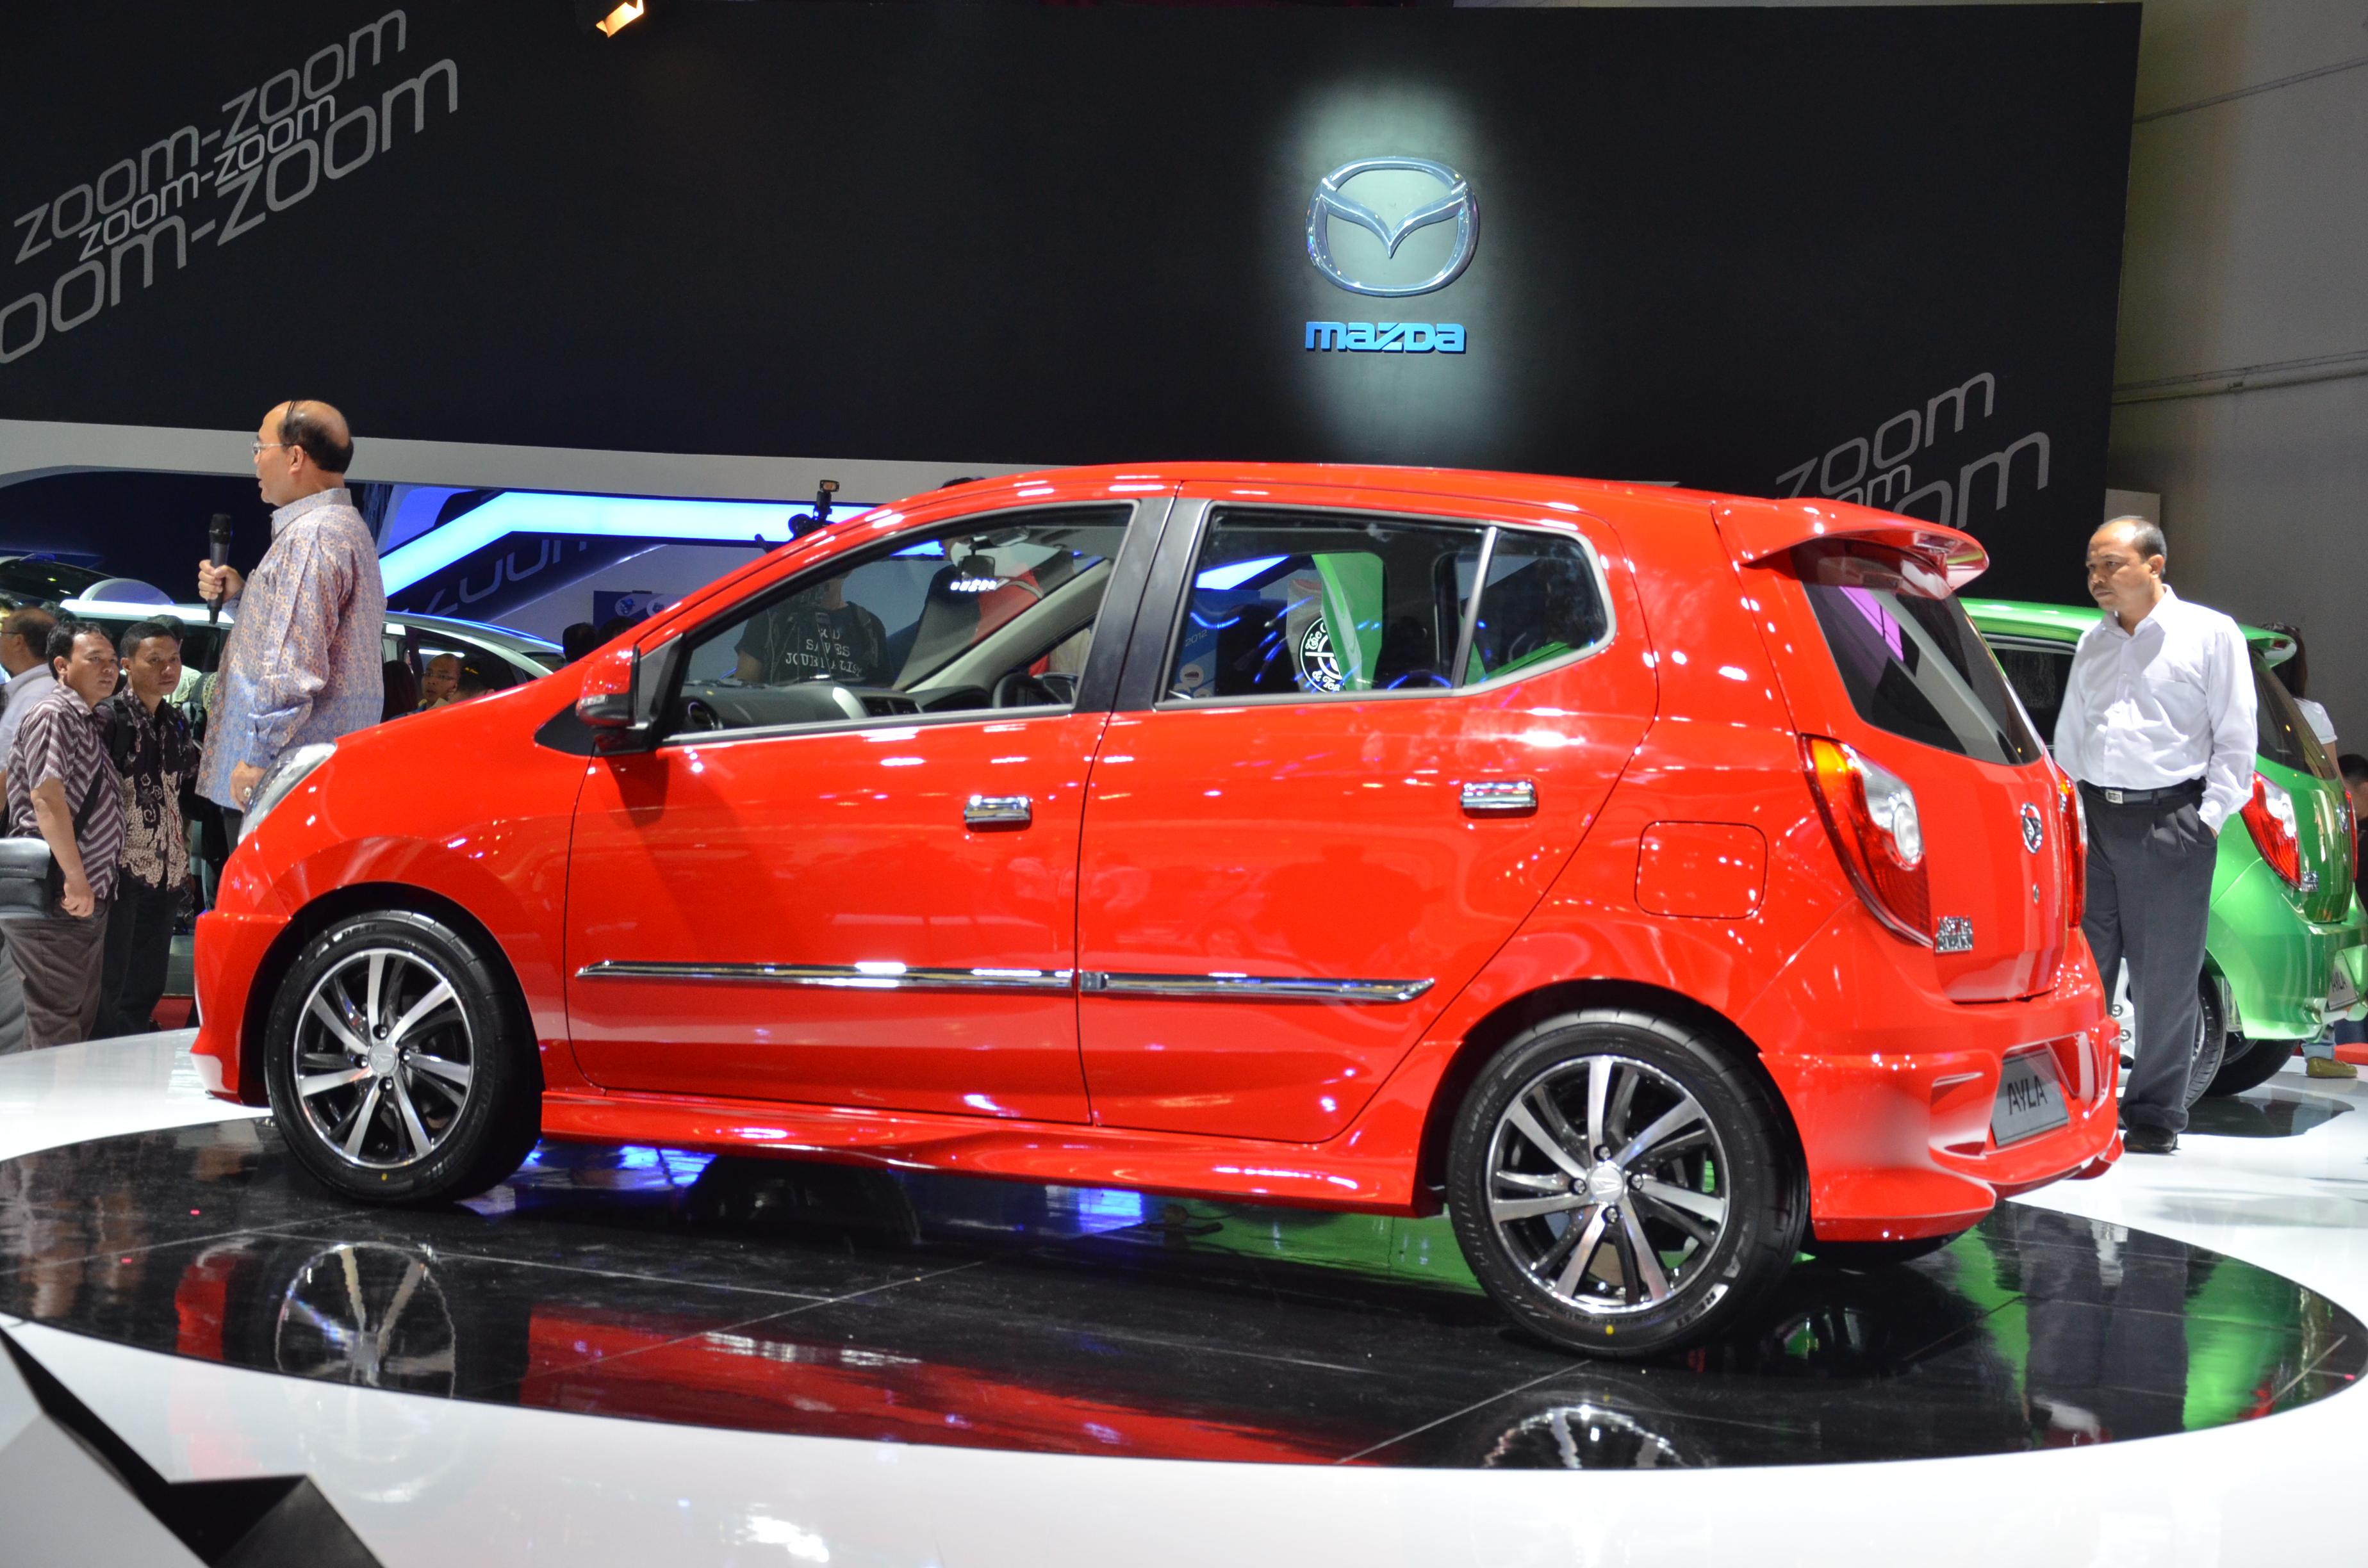 Daihatsu Ayla 1.0L eco-car launched in Indonesia